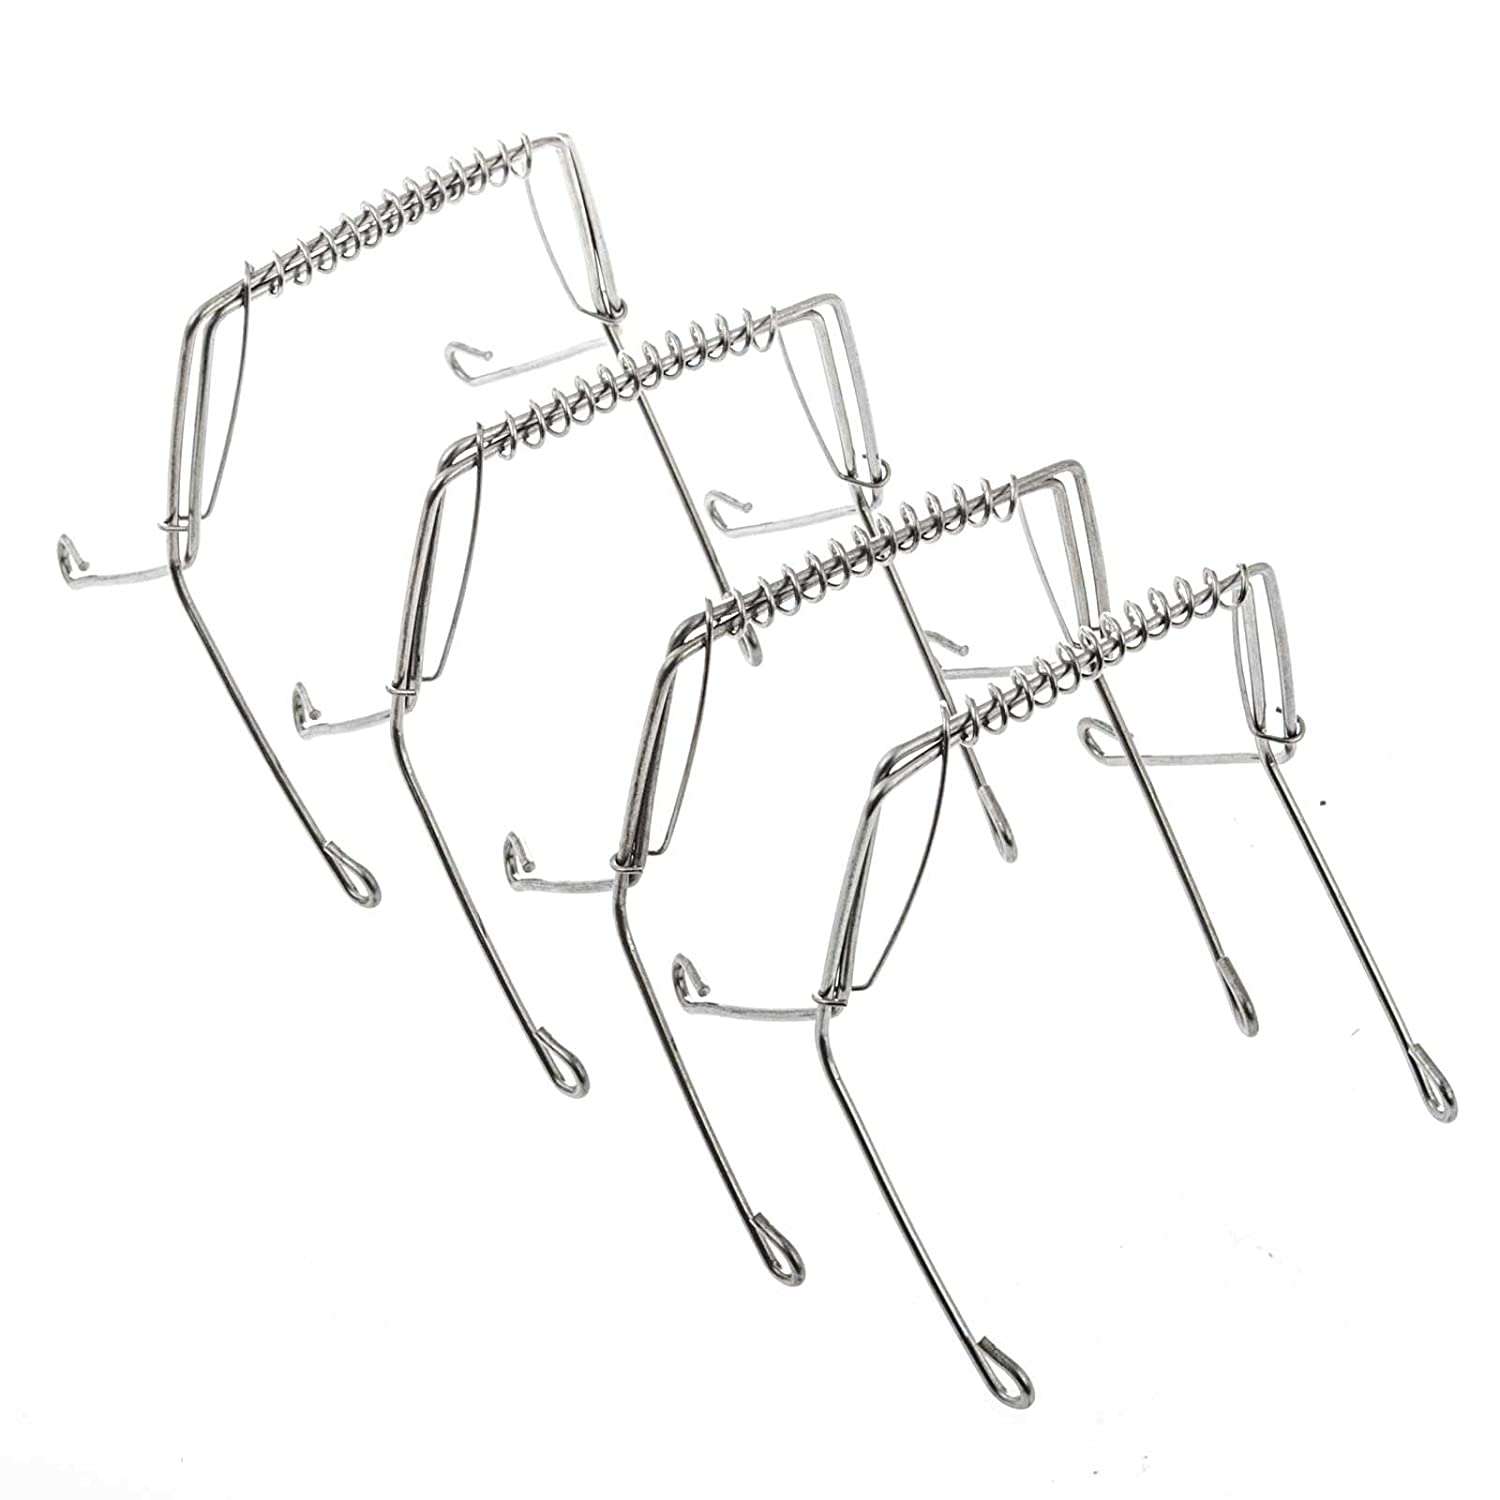 Sidco 10 x roulade clamp roulade rouladen tie holder clip rings sidco 10 x roulade clamp roulade rouladen tie holder clip rings amazon kitchen home cheapraybanclubmaster Choice Image